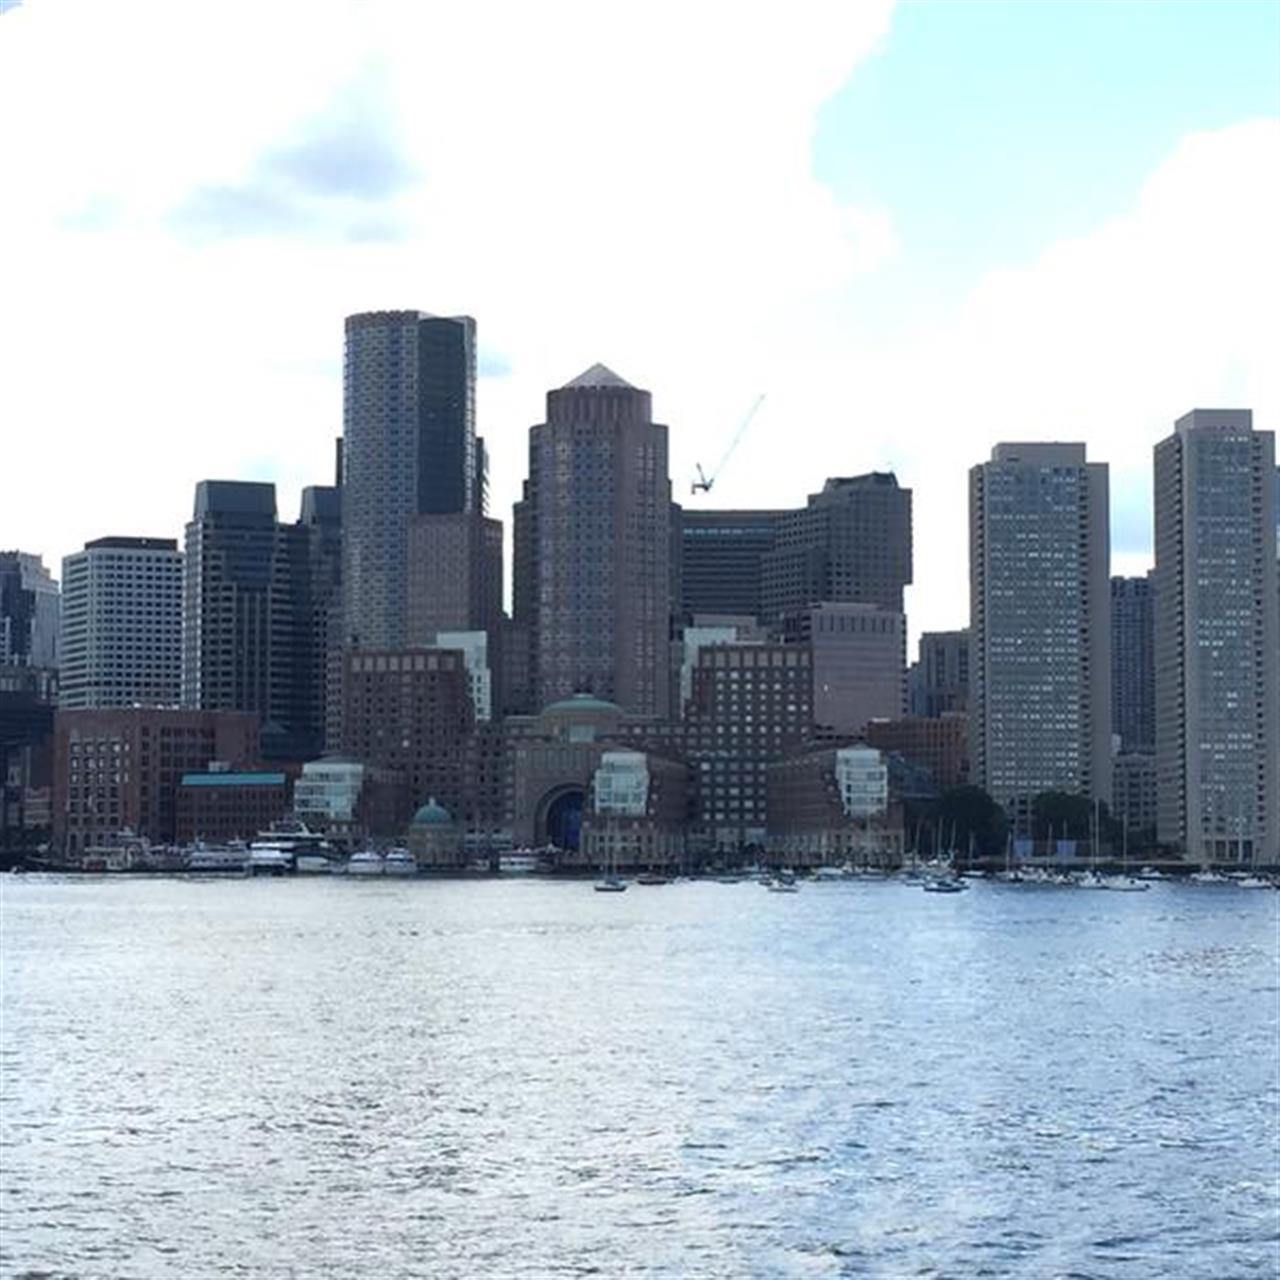 #LeadingreLocal - Boston Harbor